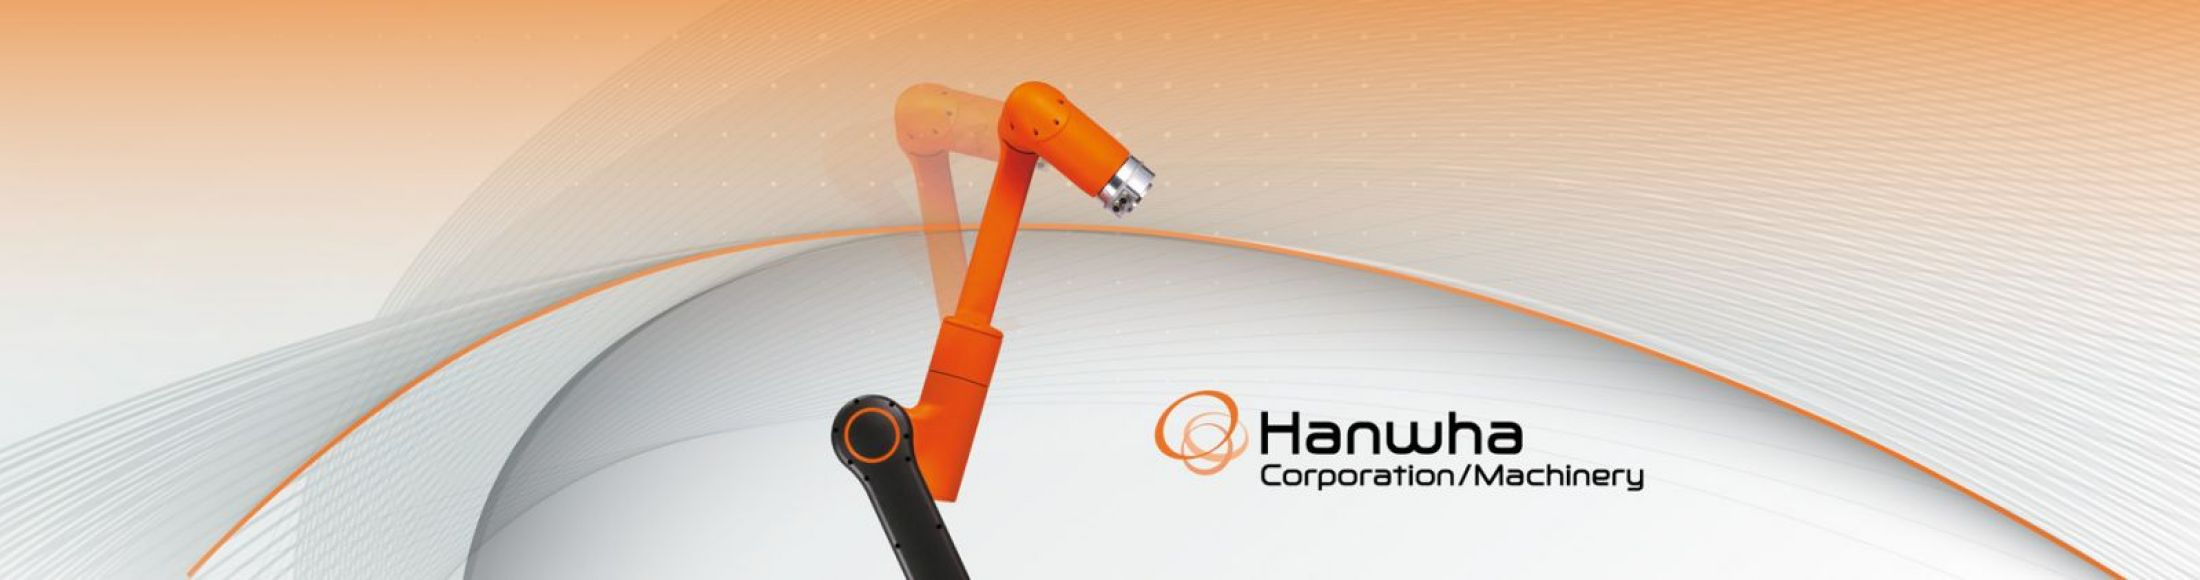 Hanwha Corporation/Machinery